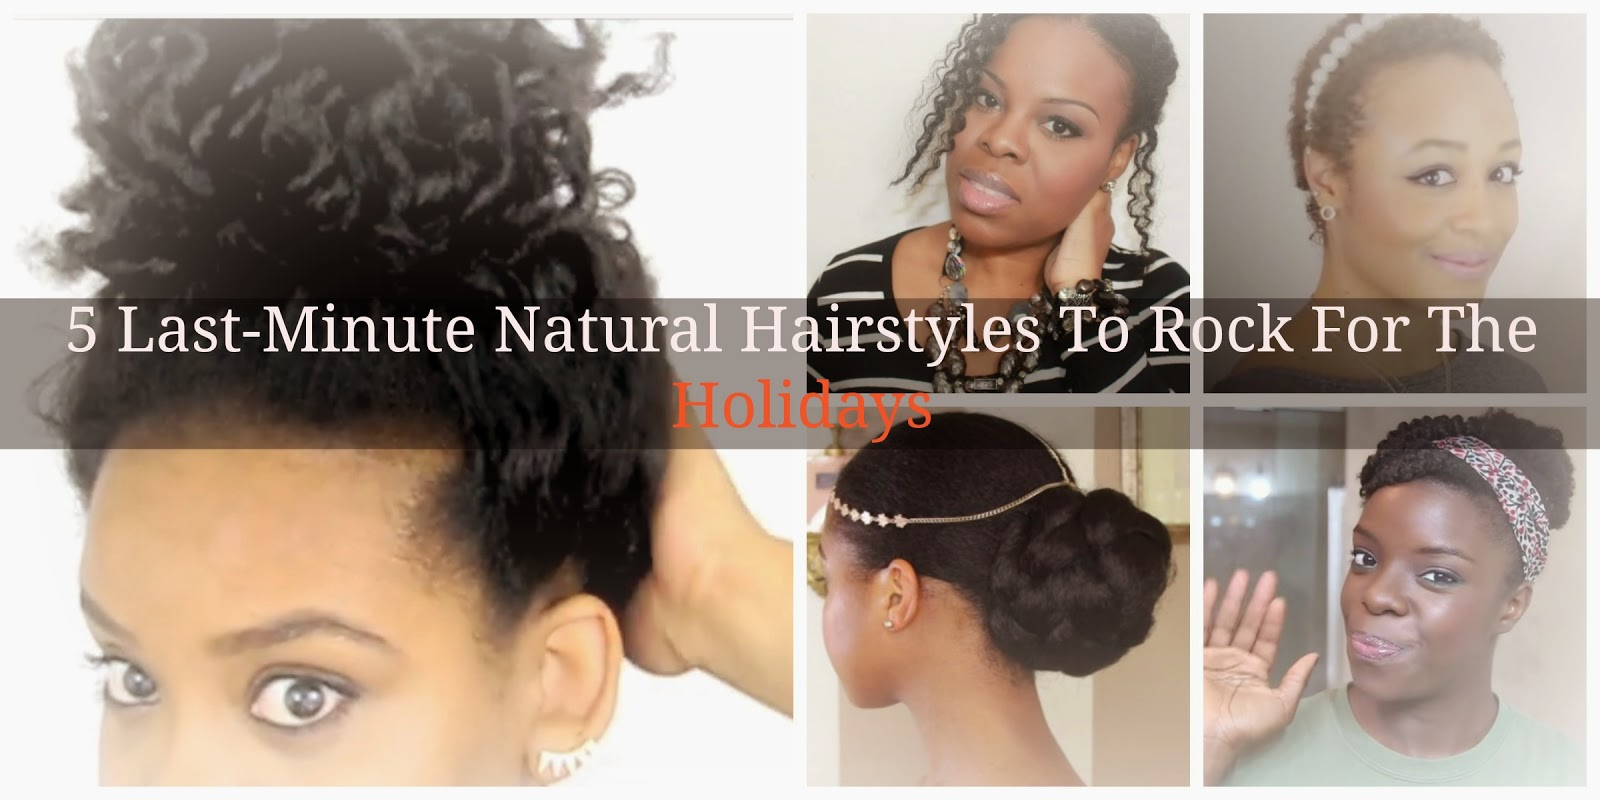 5 Last Minute Natural Hairstyles To Rock For The Holidays